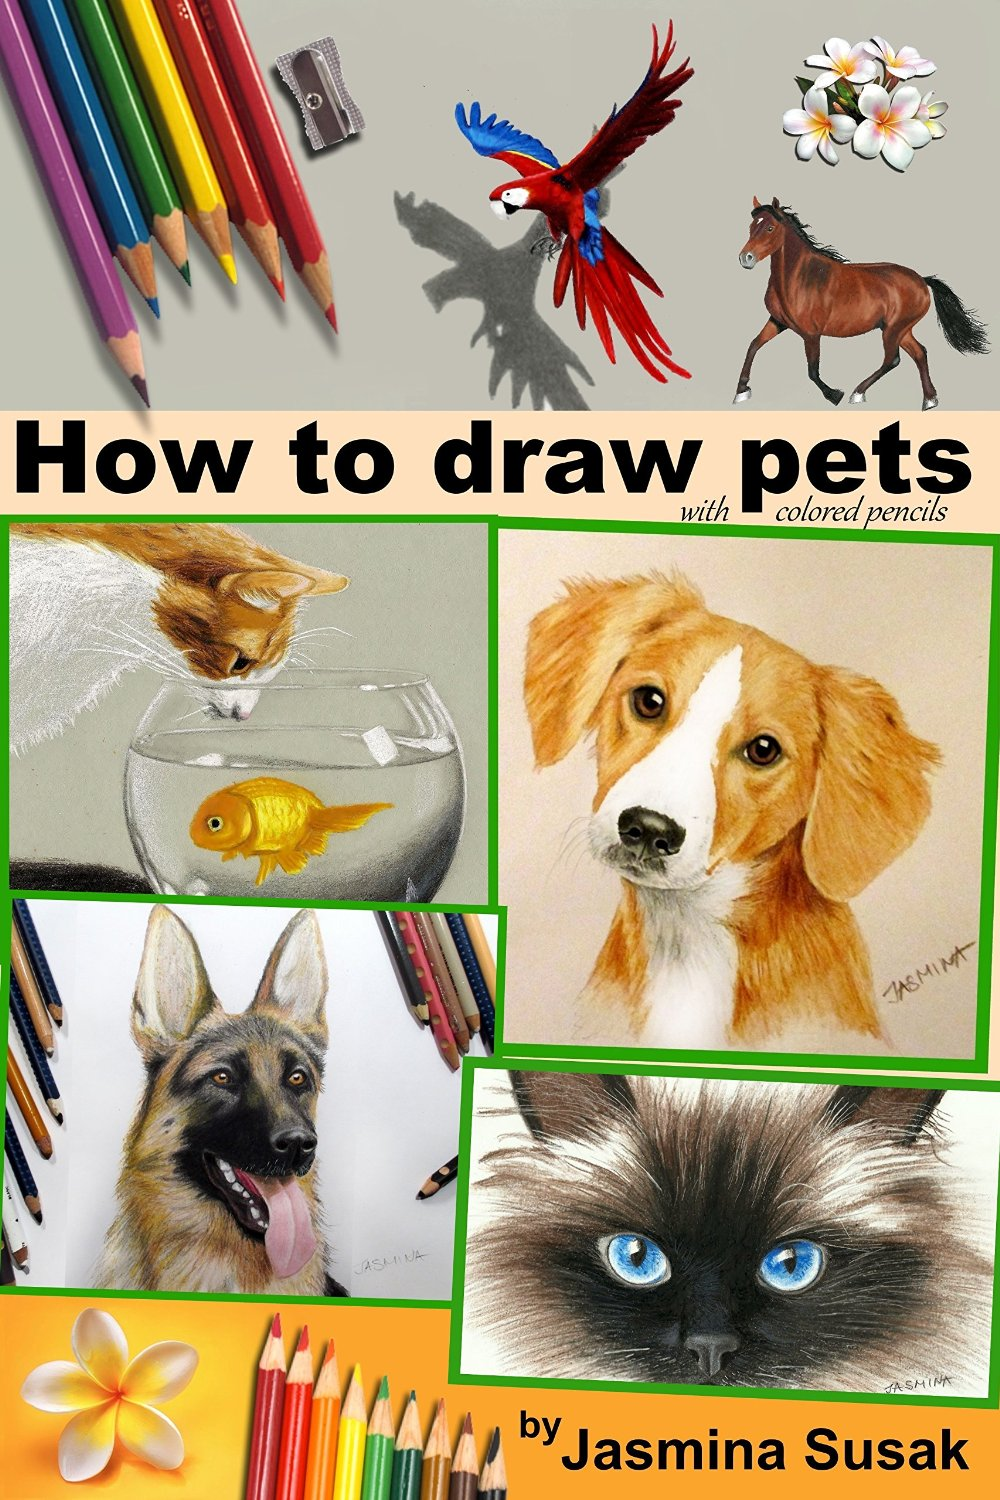 How-To-Draw-Pets-With-Colored-Pencils